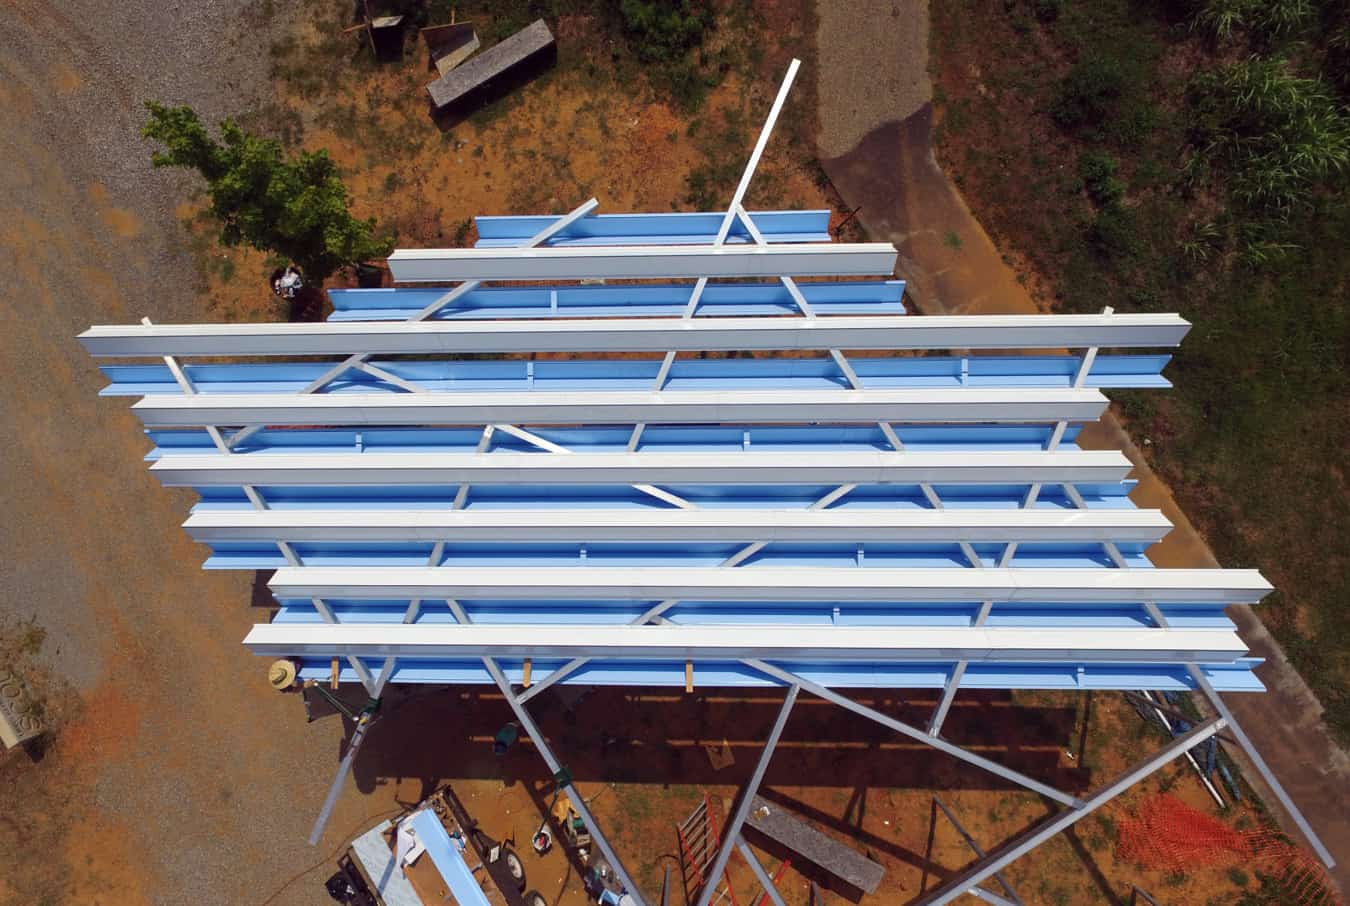 View of the shade structure from above